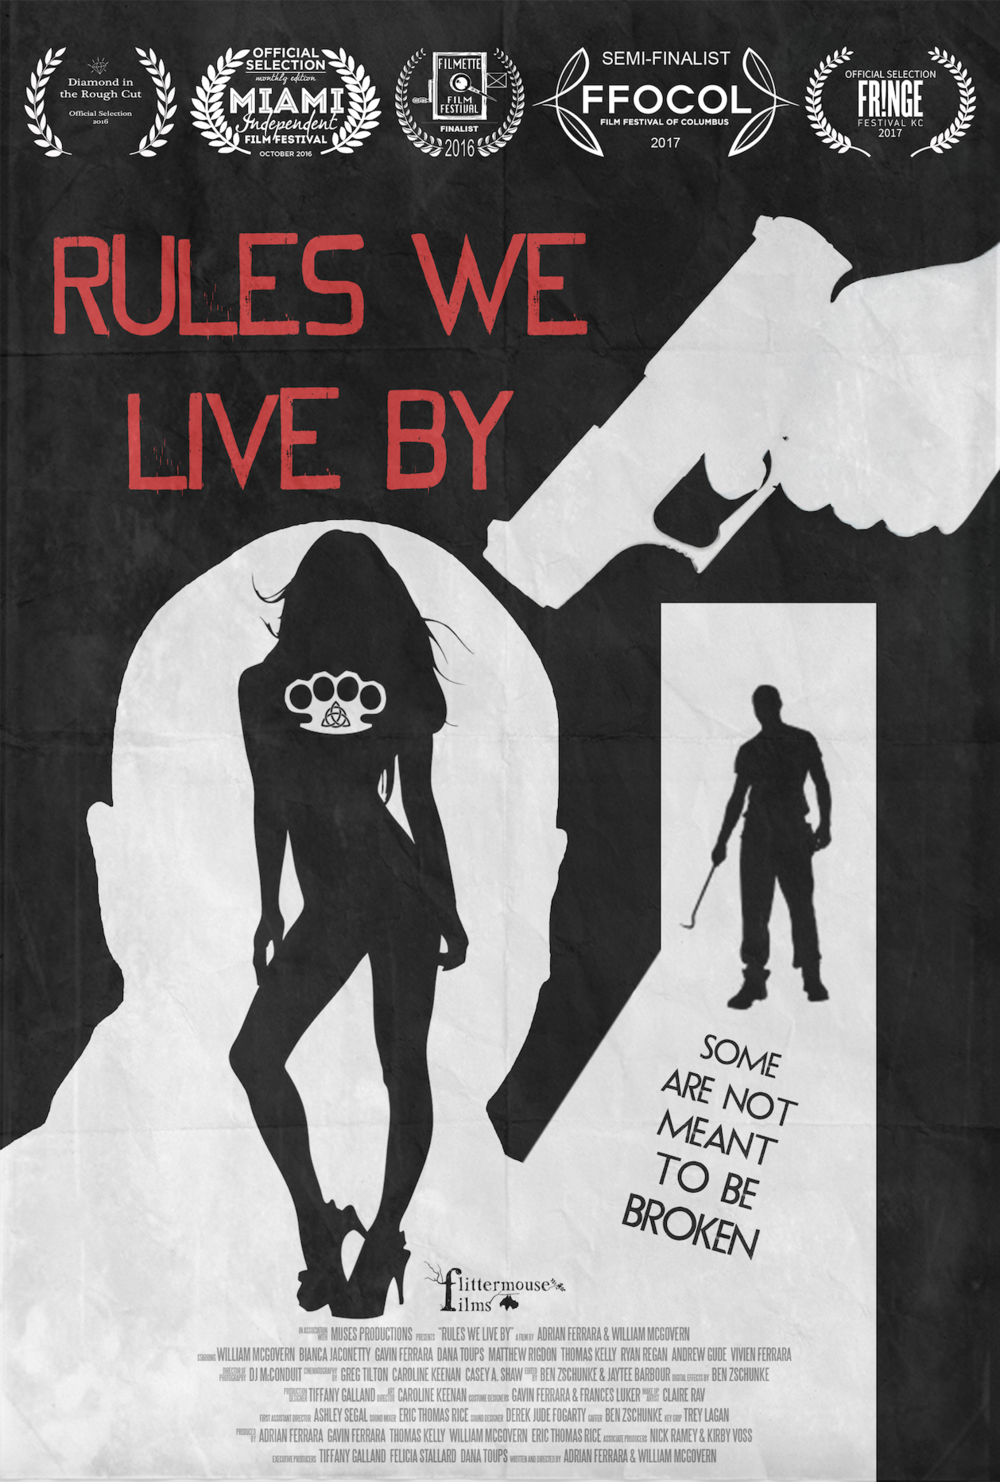 The Official Poster of Flittermouse Films' feature film  Rules We Live By.